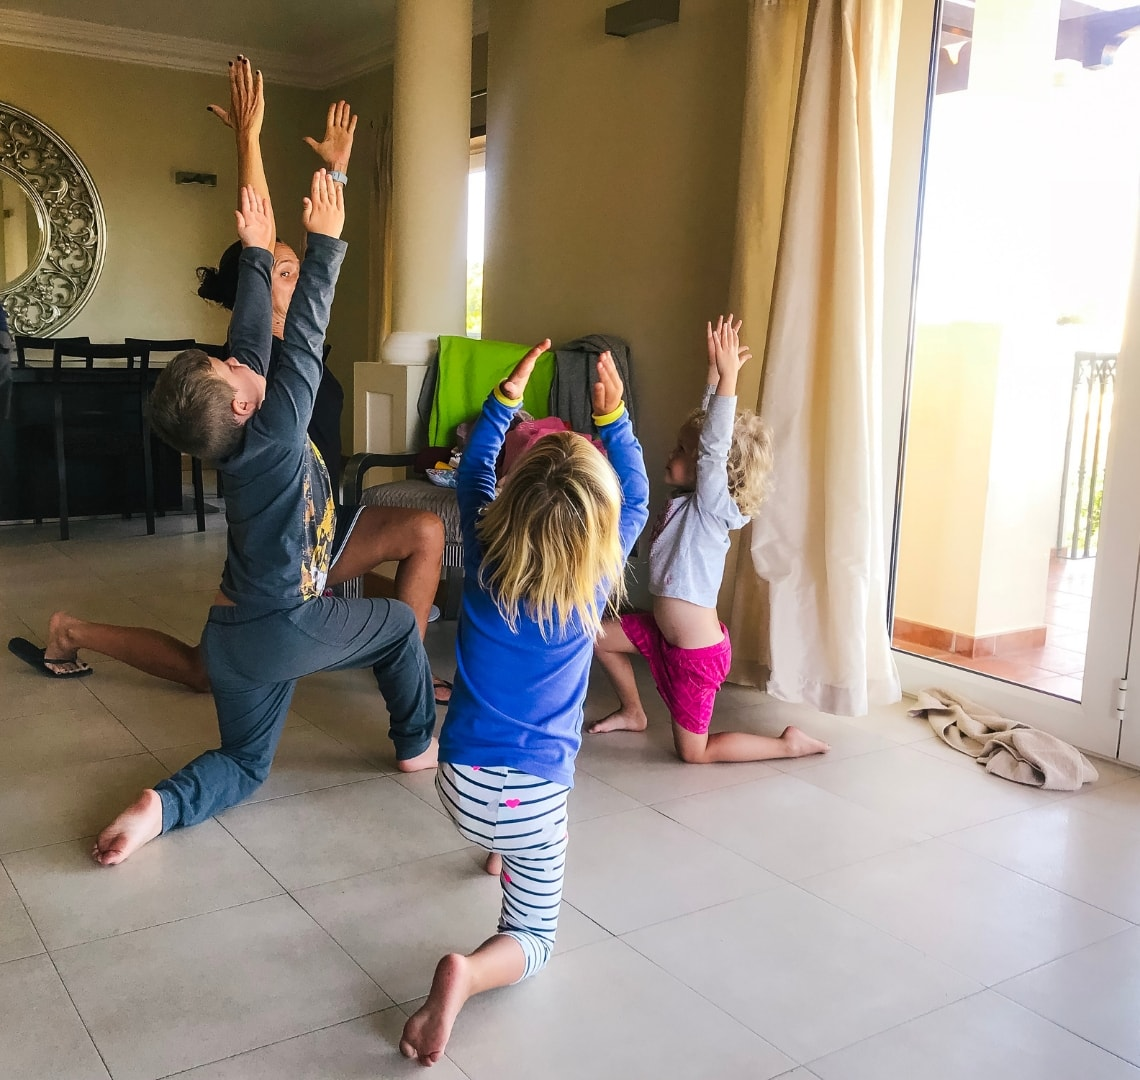 Cures For Jet Lag - The Things with their cousin and aunt doing bedtime yoga in our villa in Portugal